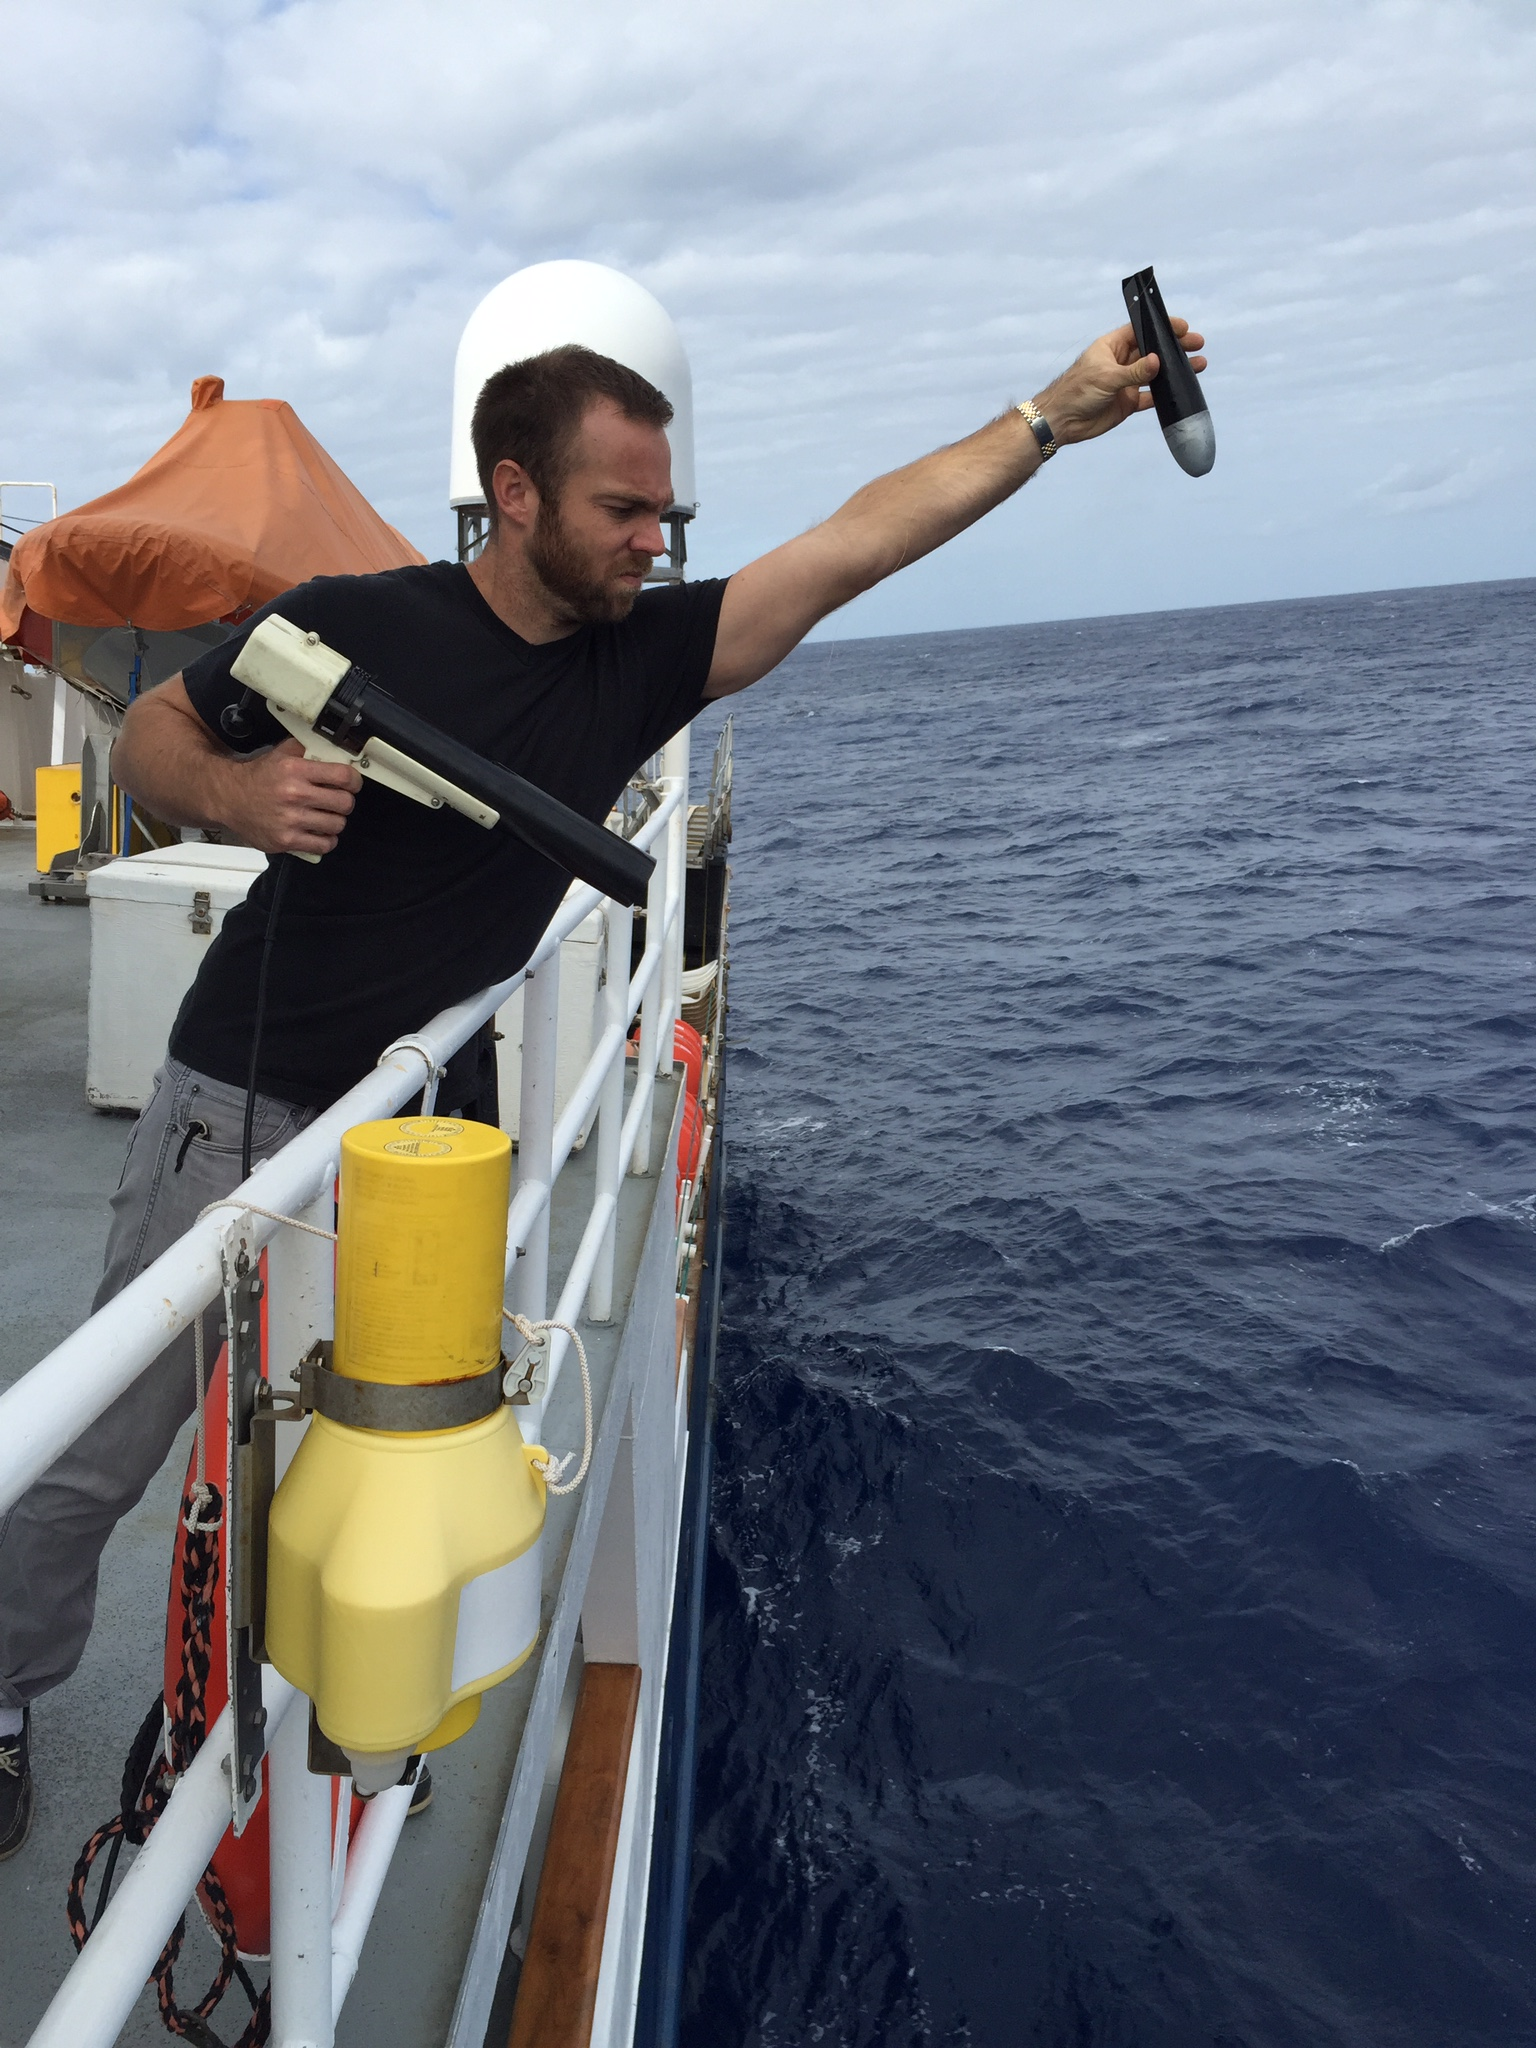 Jay Hooper conducting an XBT fall rate test. Image credit: NOAA